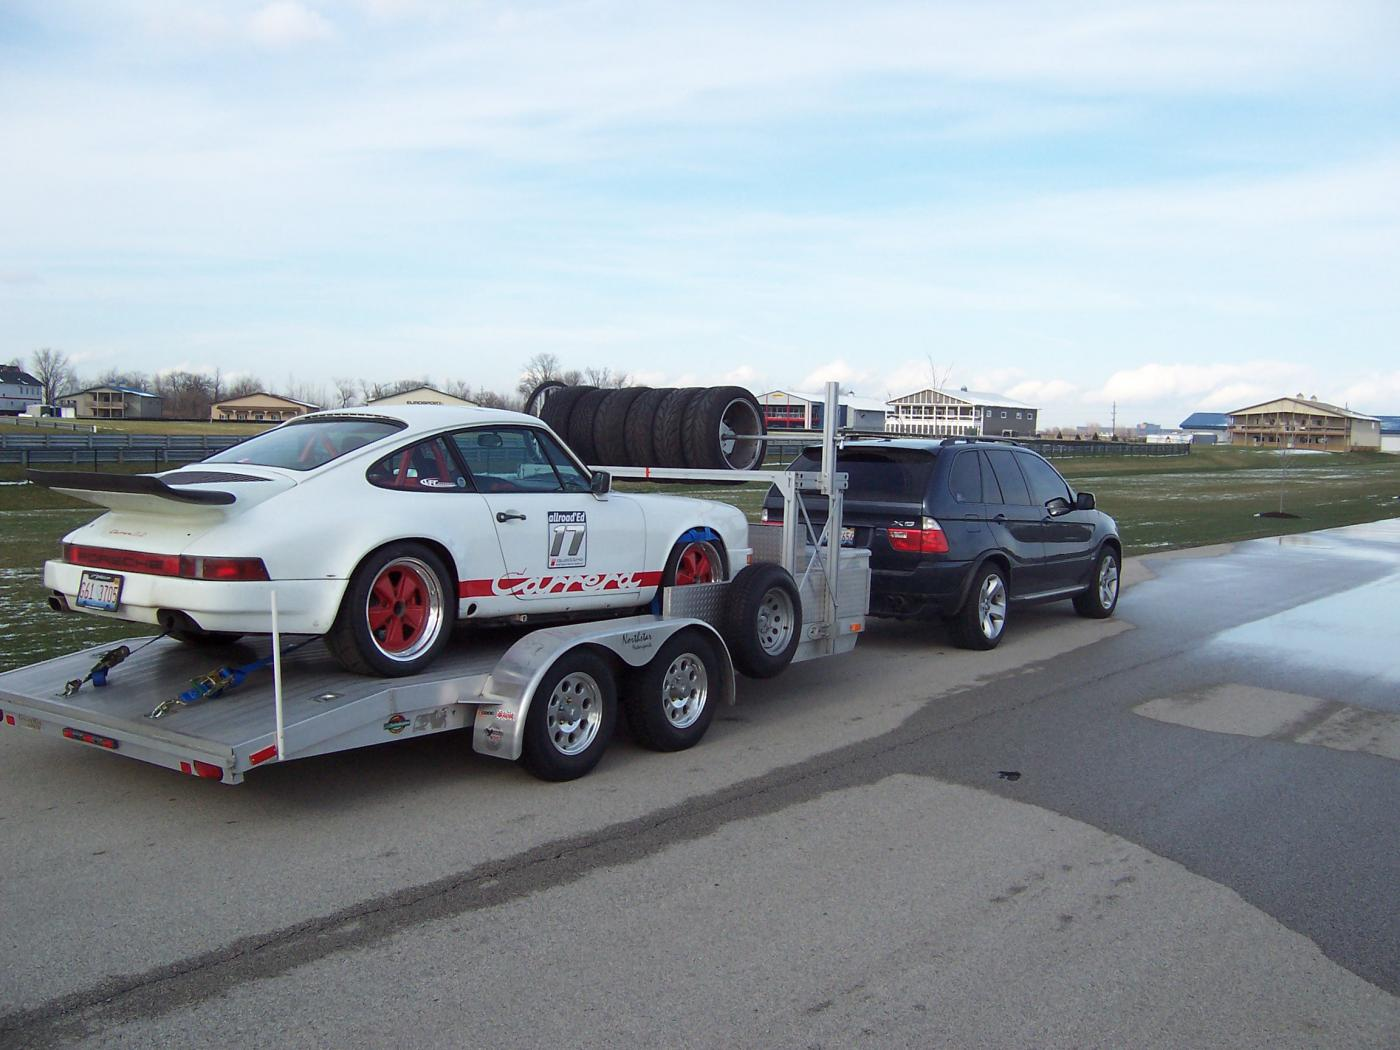 Bmw X5 Towing >> X5 Towing an Enclosed Car Trailer! - Page 3 - Xoutpost.com